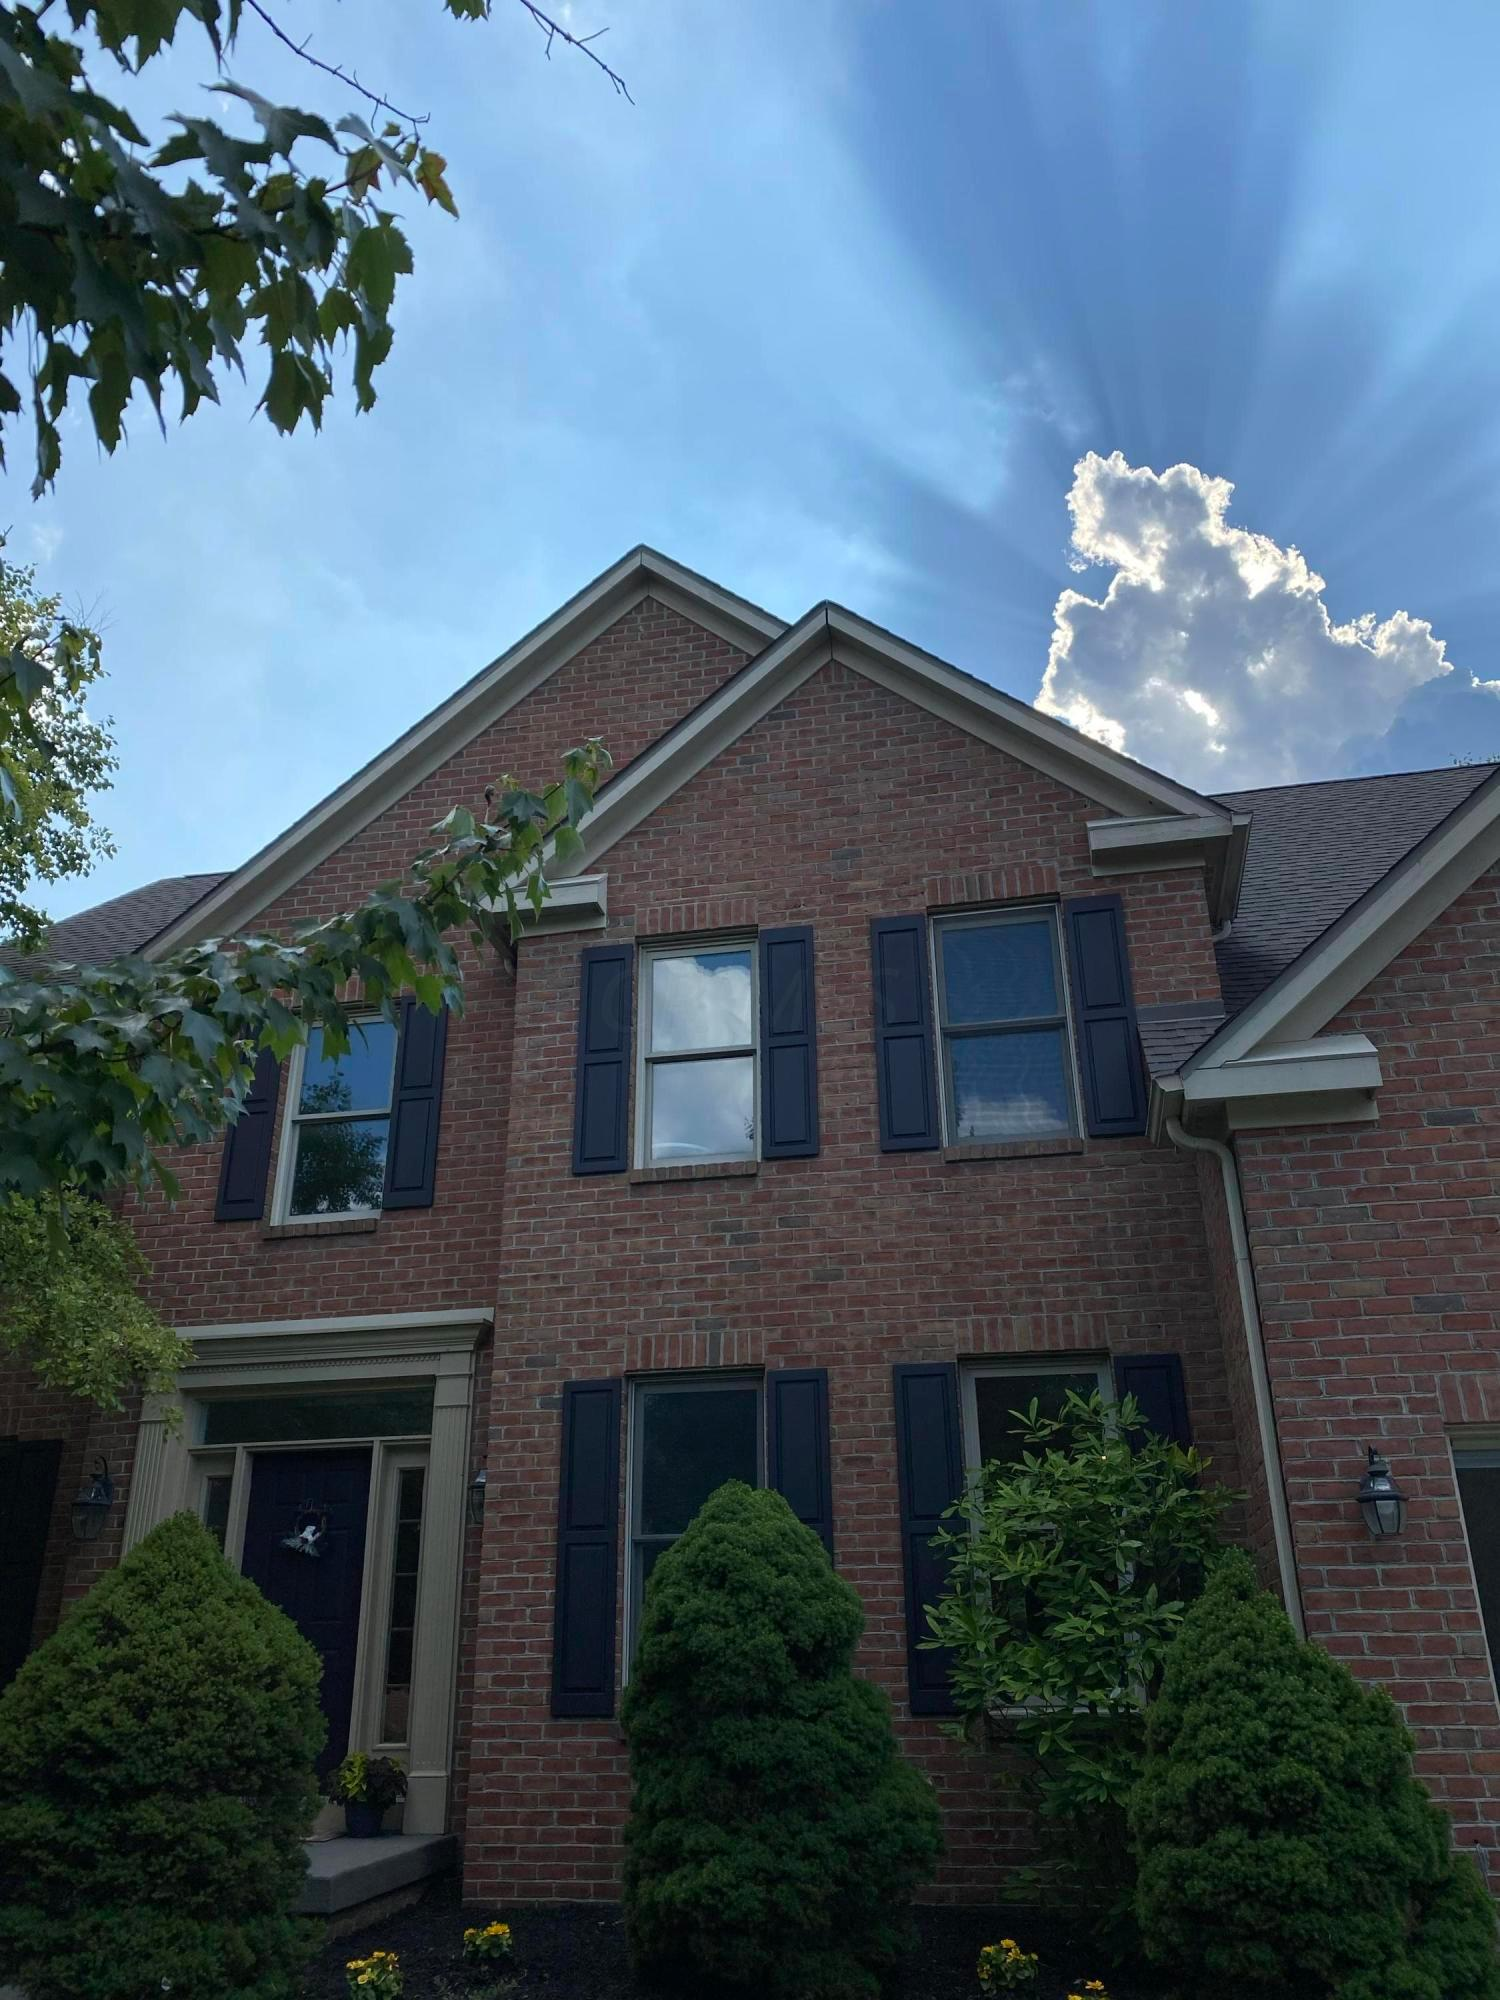 8793 Glassford Court, Dublin, Ohio 43017, 5 Bedrooms Bedrooms, ,5 BathroomsBathrooms,Residential,For Sale,Glassford,220022671